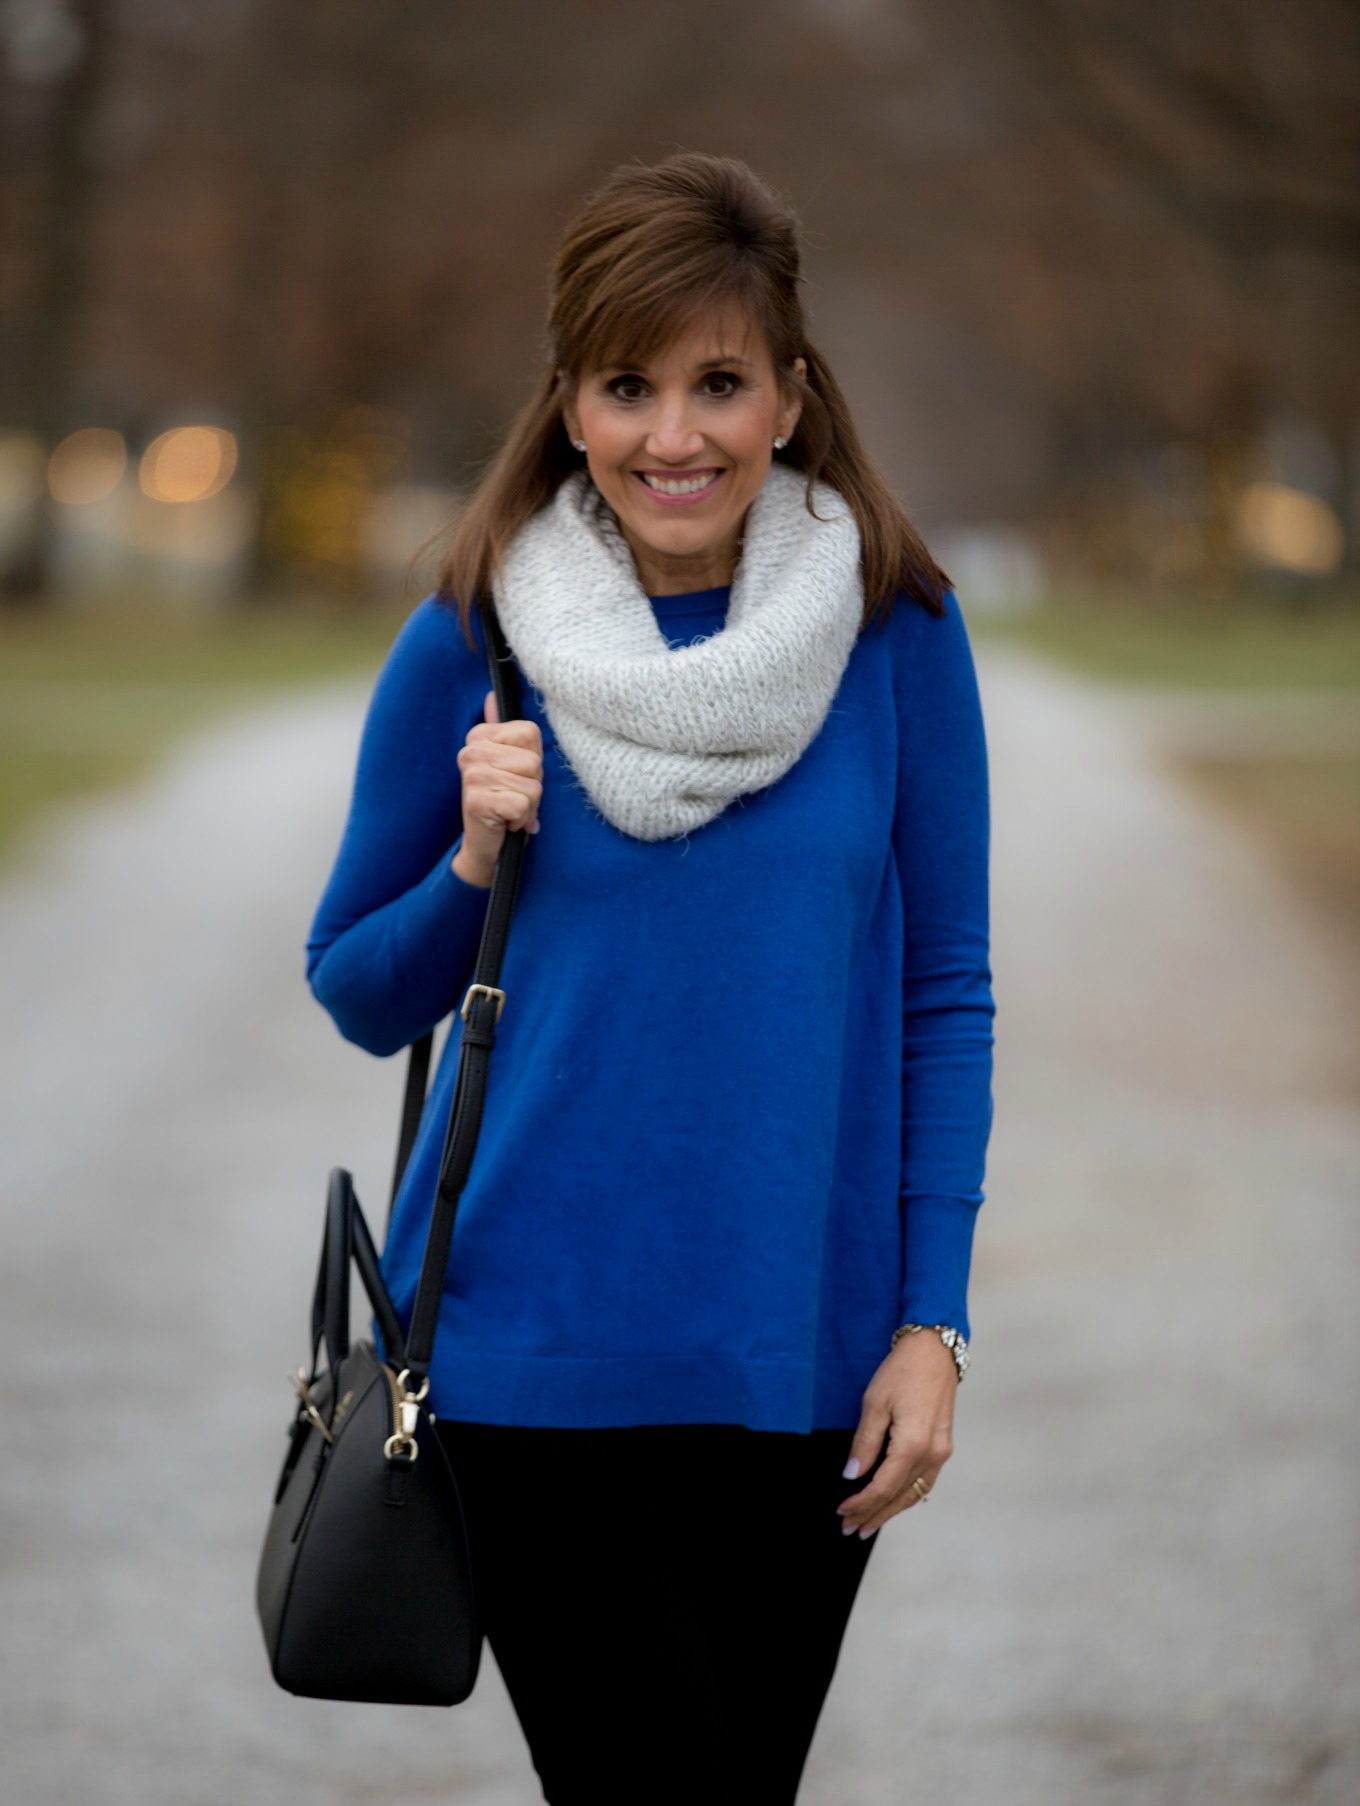 Fashion blogger, Cyndi Spivey, styling a royal blue sweater from Loft.